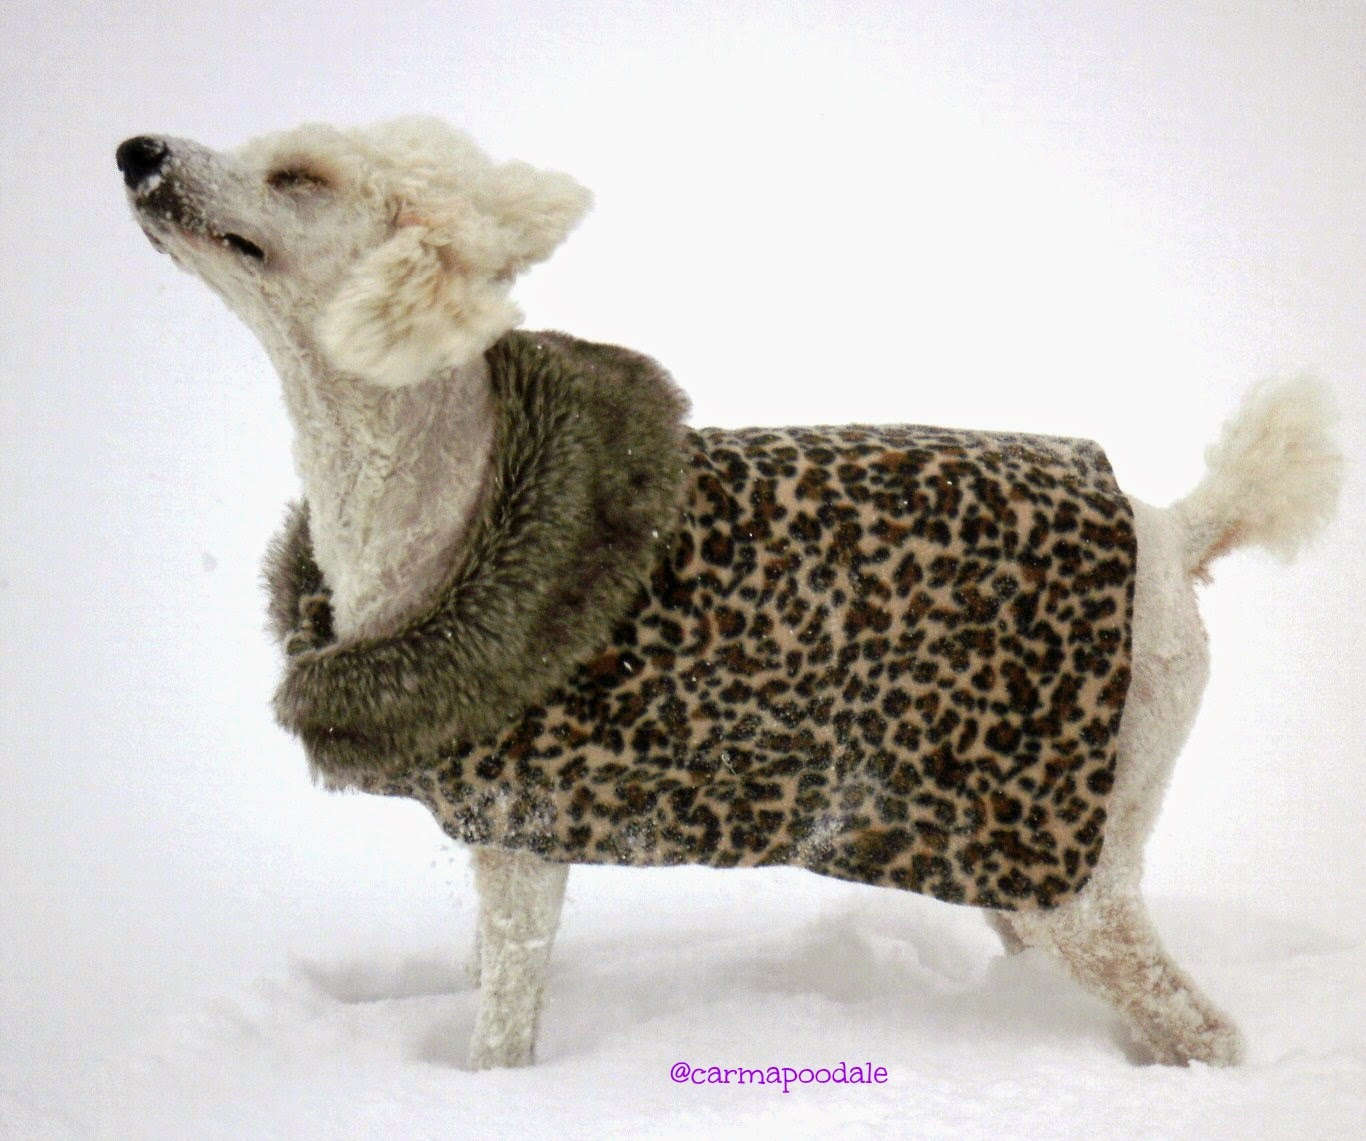 poodle in snow in leopard jacket